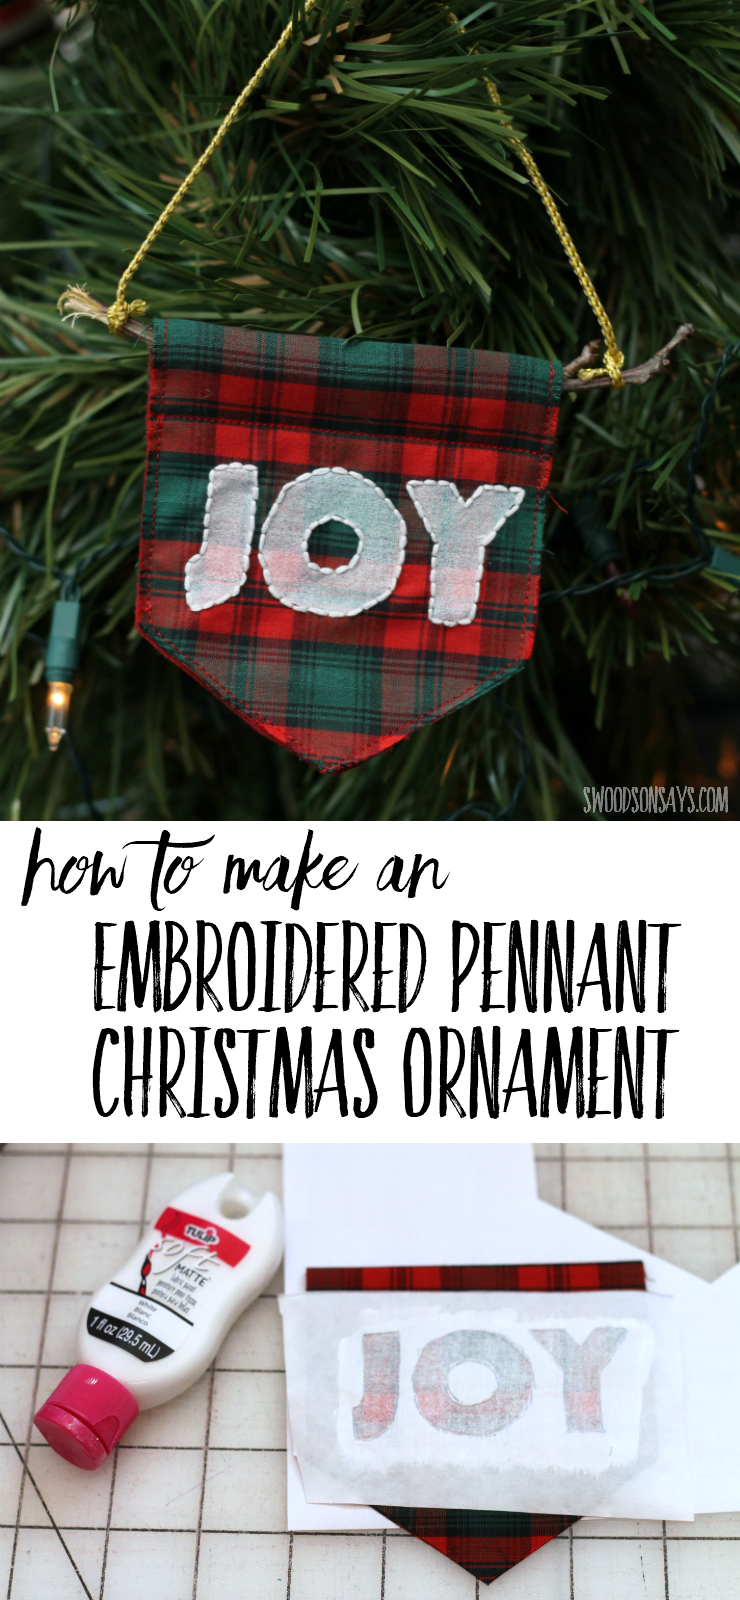 Check out this classic handmade Christmas ornament tutorial! Simple embroidery and fabric scraps create a simple message for your Christmas tree decor - joy! These would be easy ornaments to make for craft fairs, start sewing! #diychristmas #diychristmasornament #embroideredchristmasornament